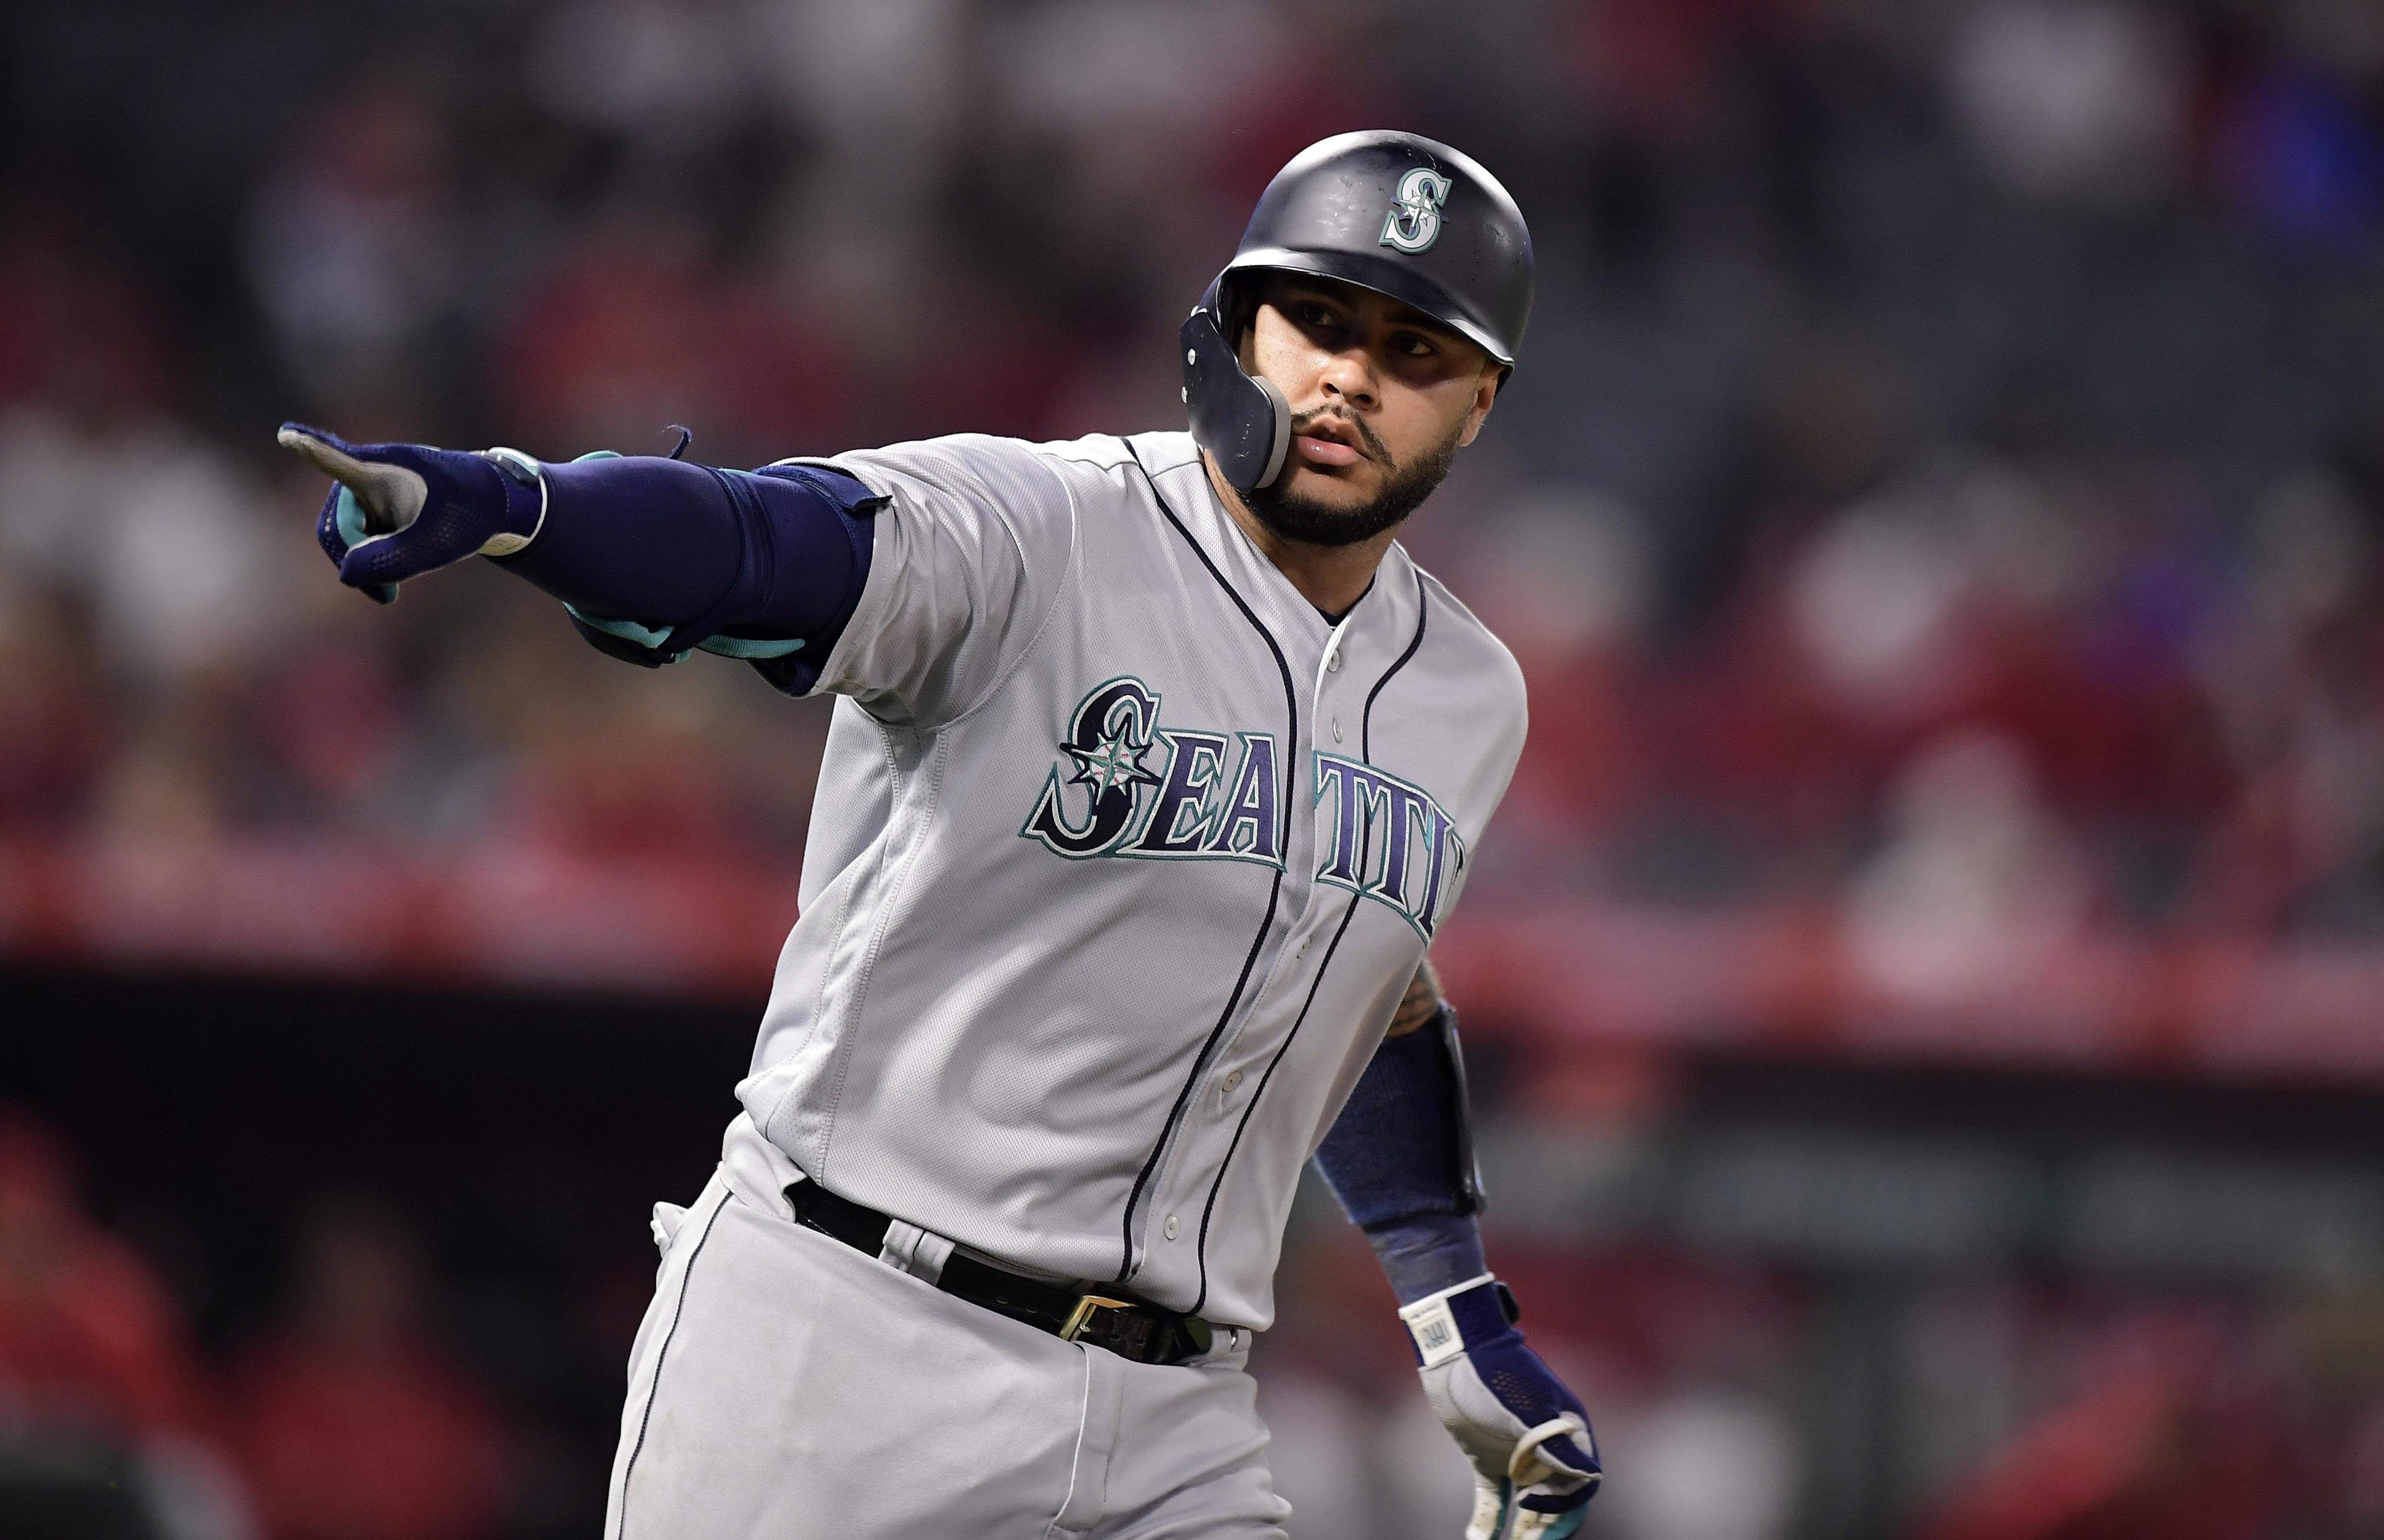 521d33d02 Seattle Mariners  Omar Narvaez points to his dugout as he round first after  hitting a